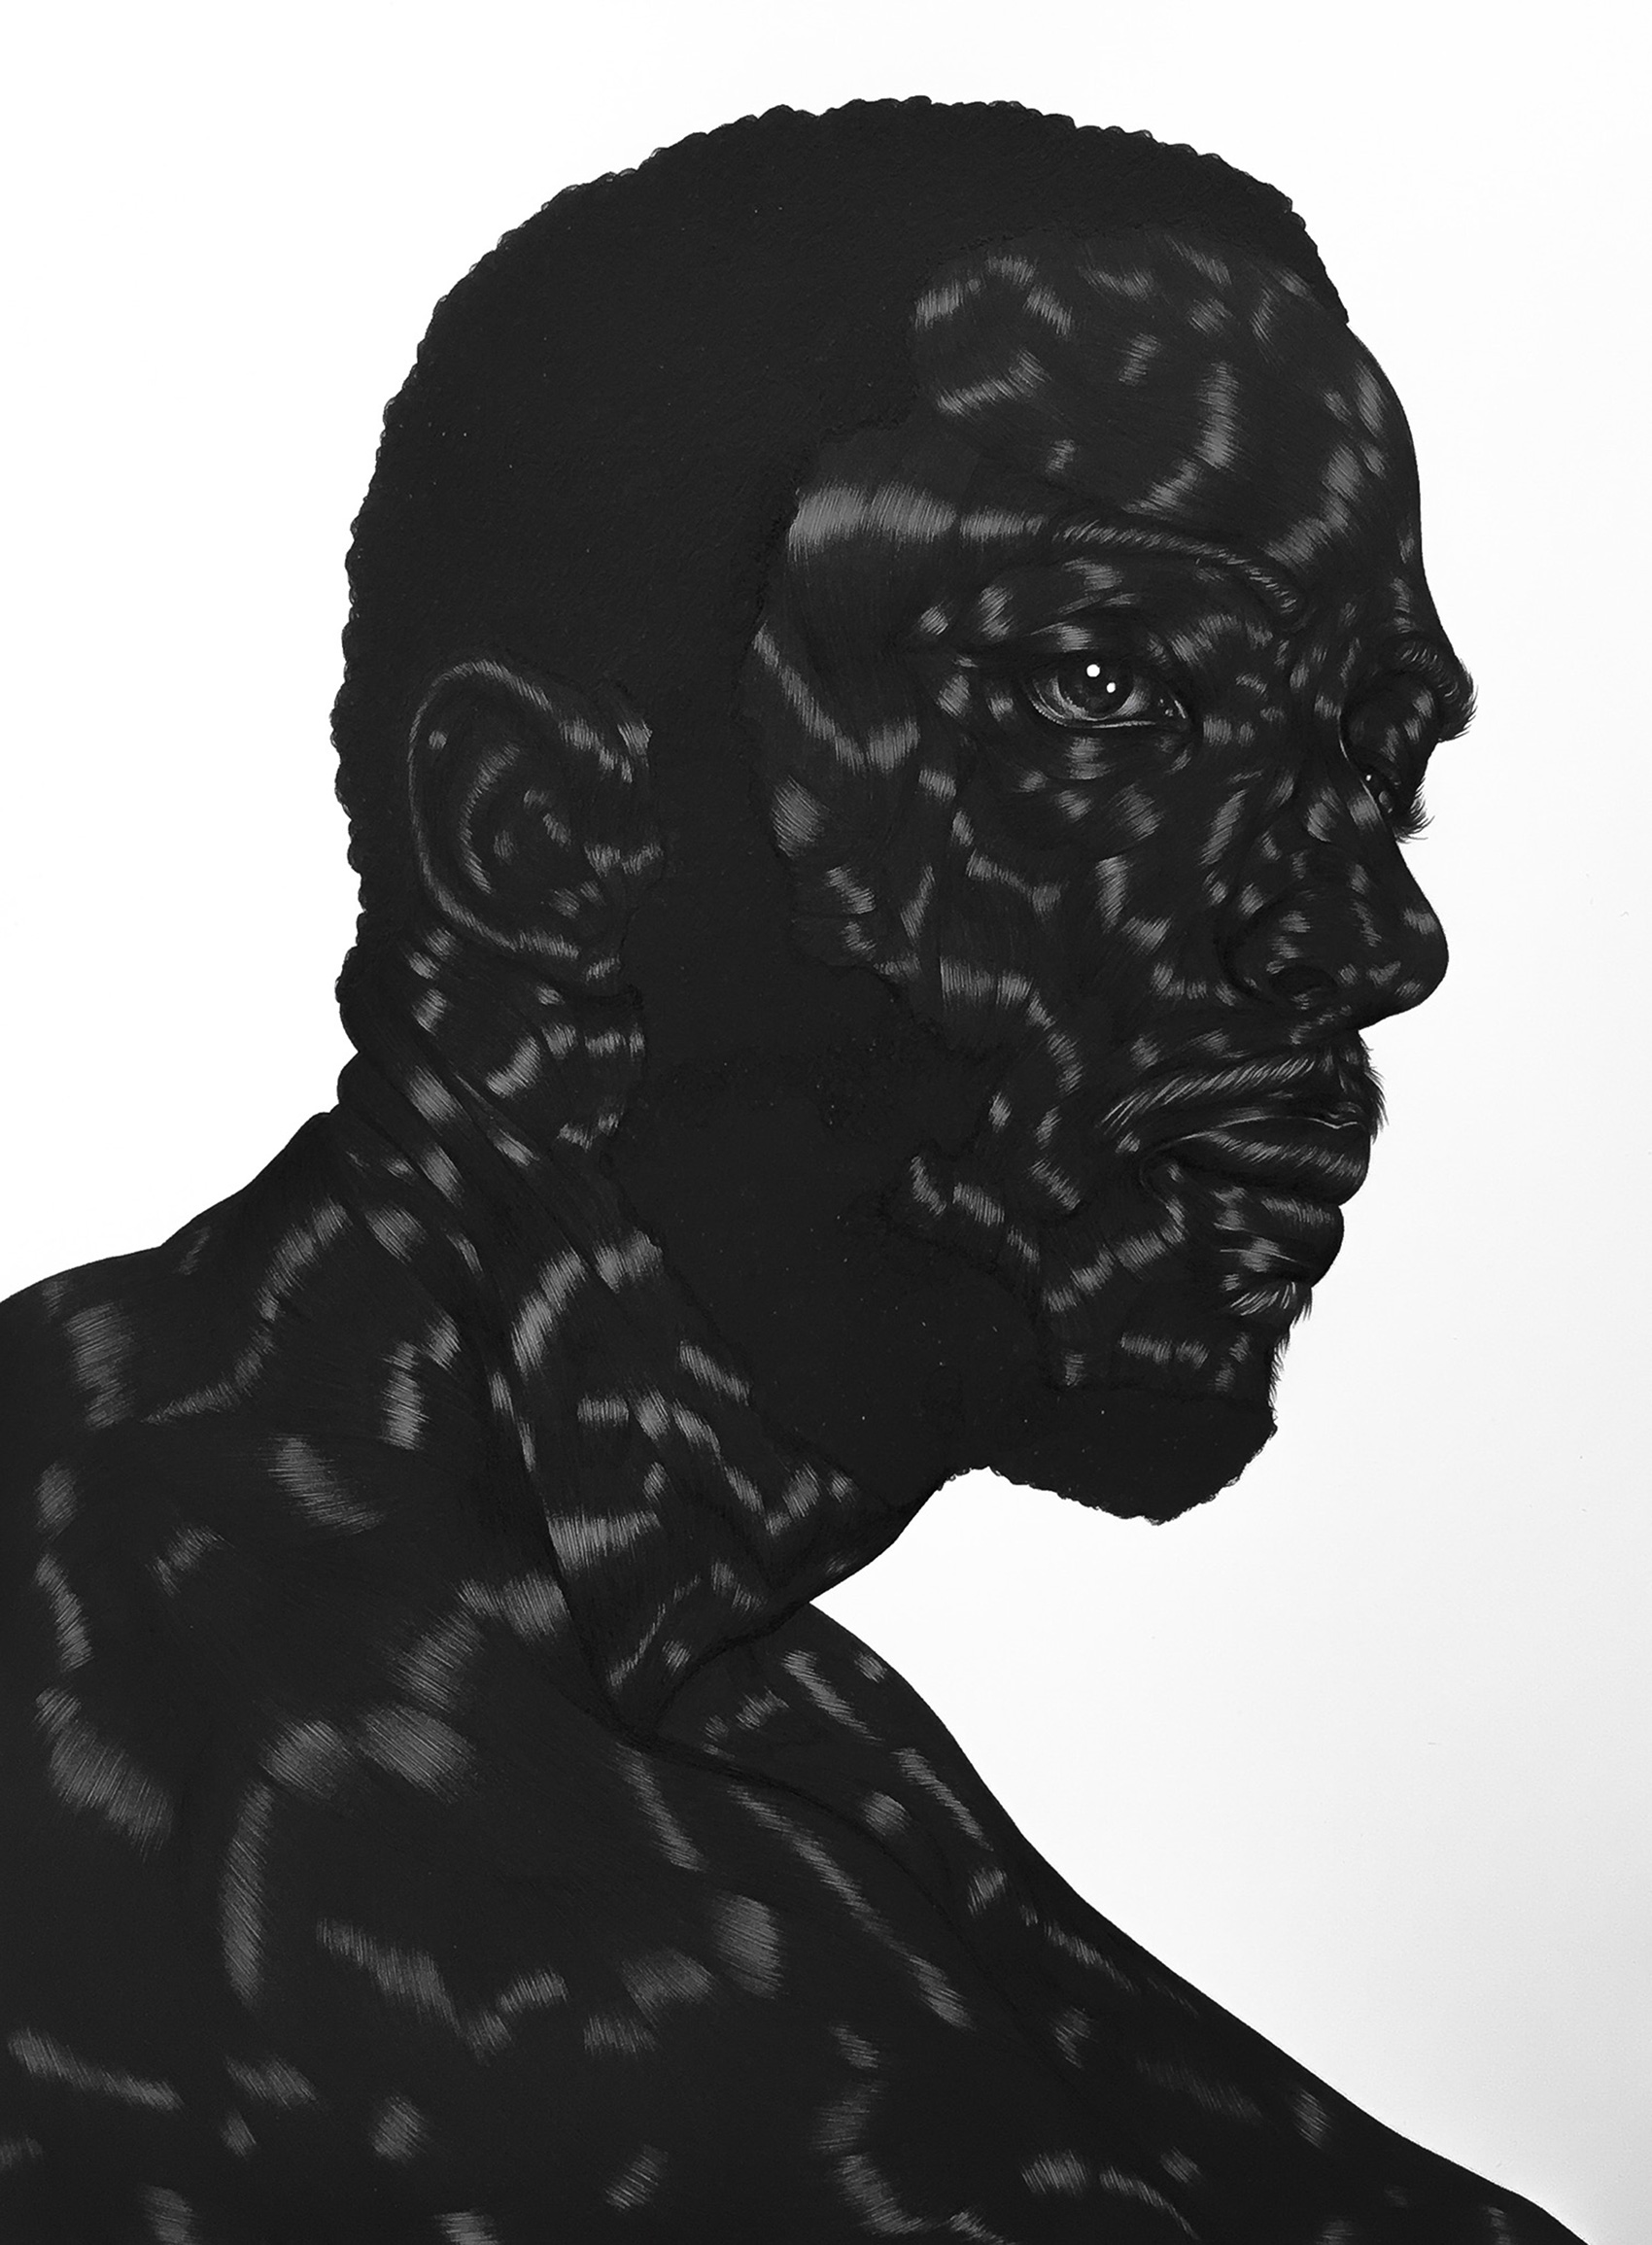 Beyond the Cover: Toyin Ojih Odutola